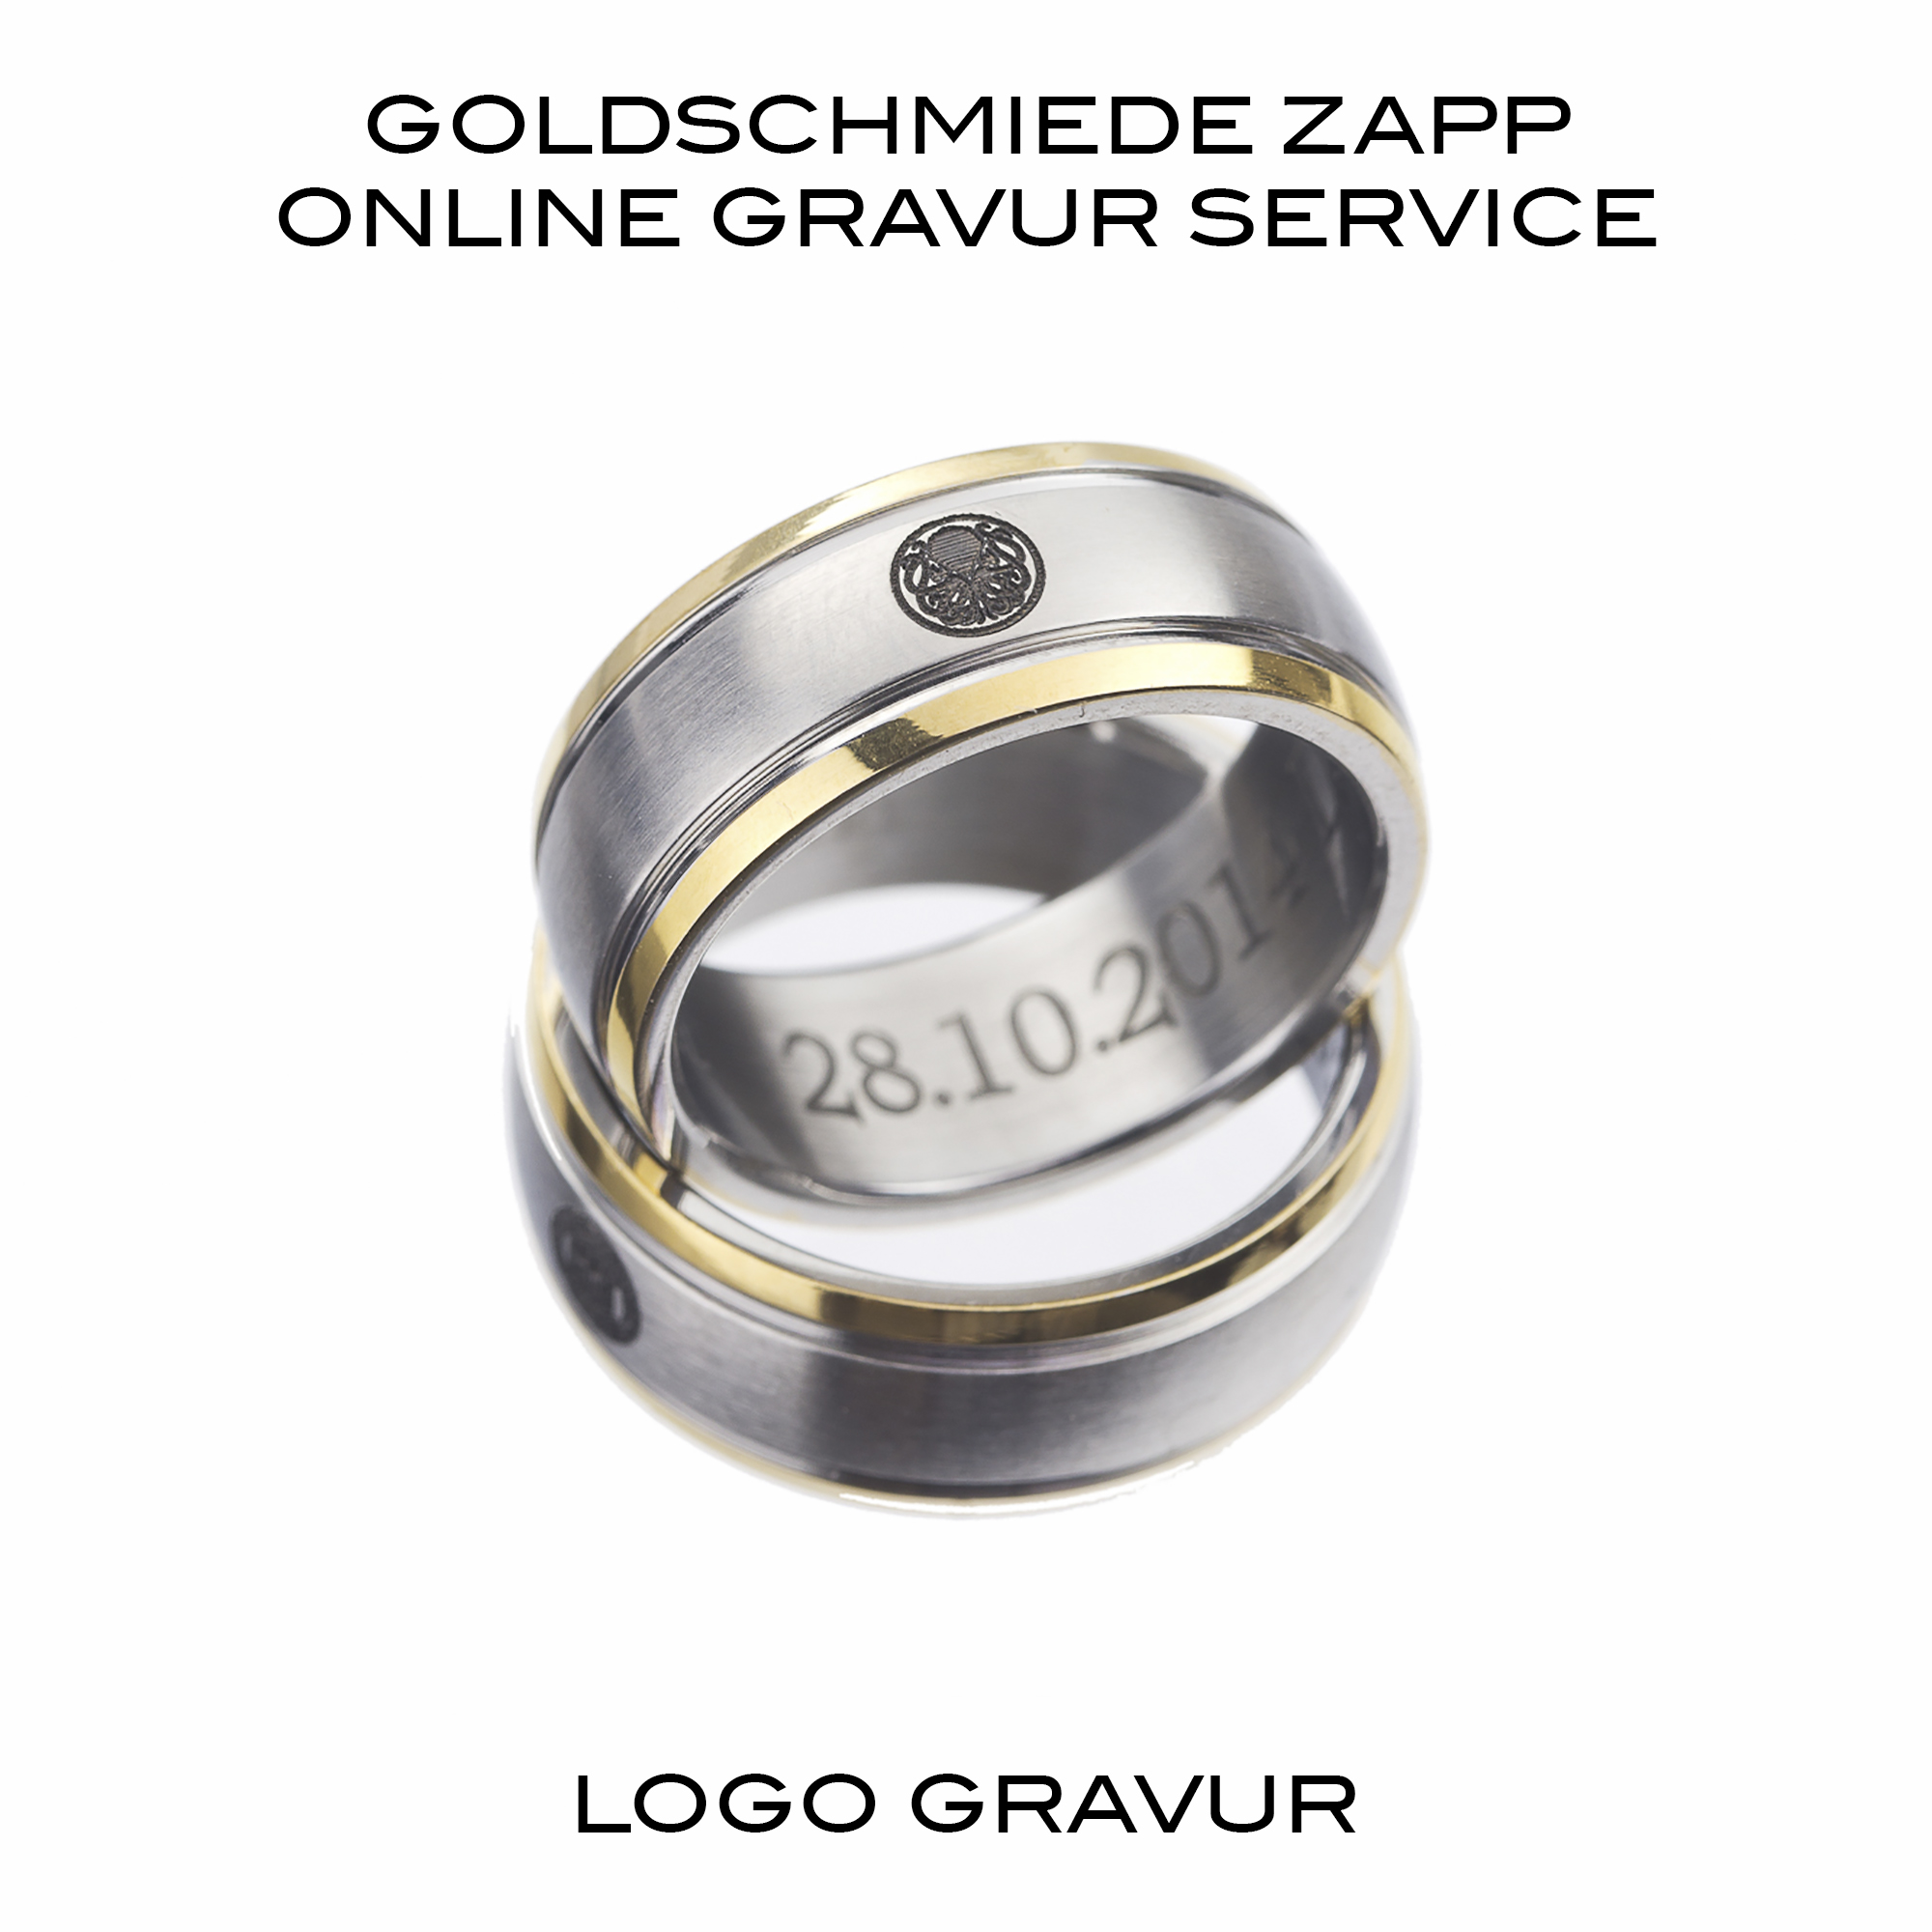 logo in trauringe gravieren lassen goldschmiede juwelier zapp seit 1907. Black Bedroom Furniture Sets. Home Design Ideas